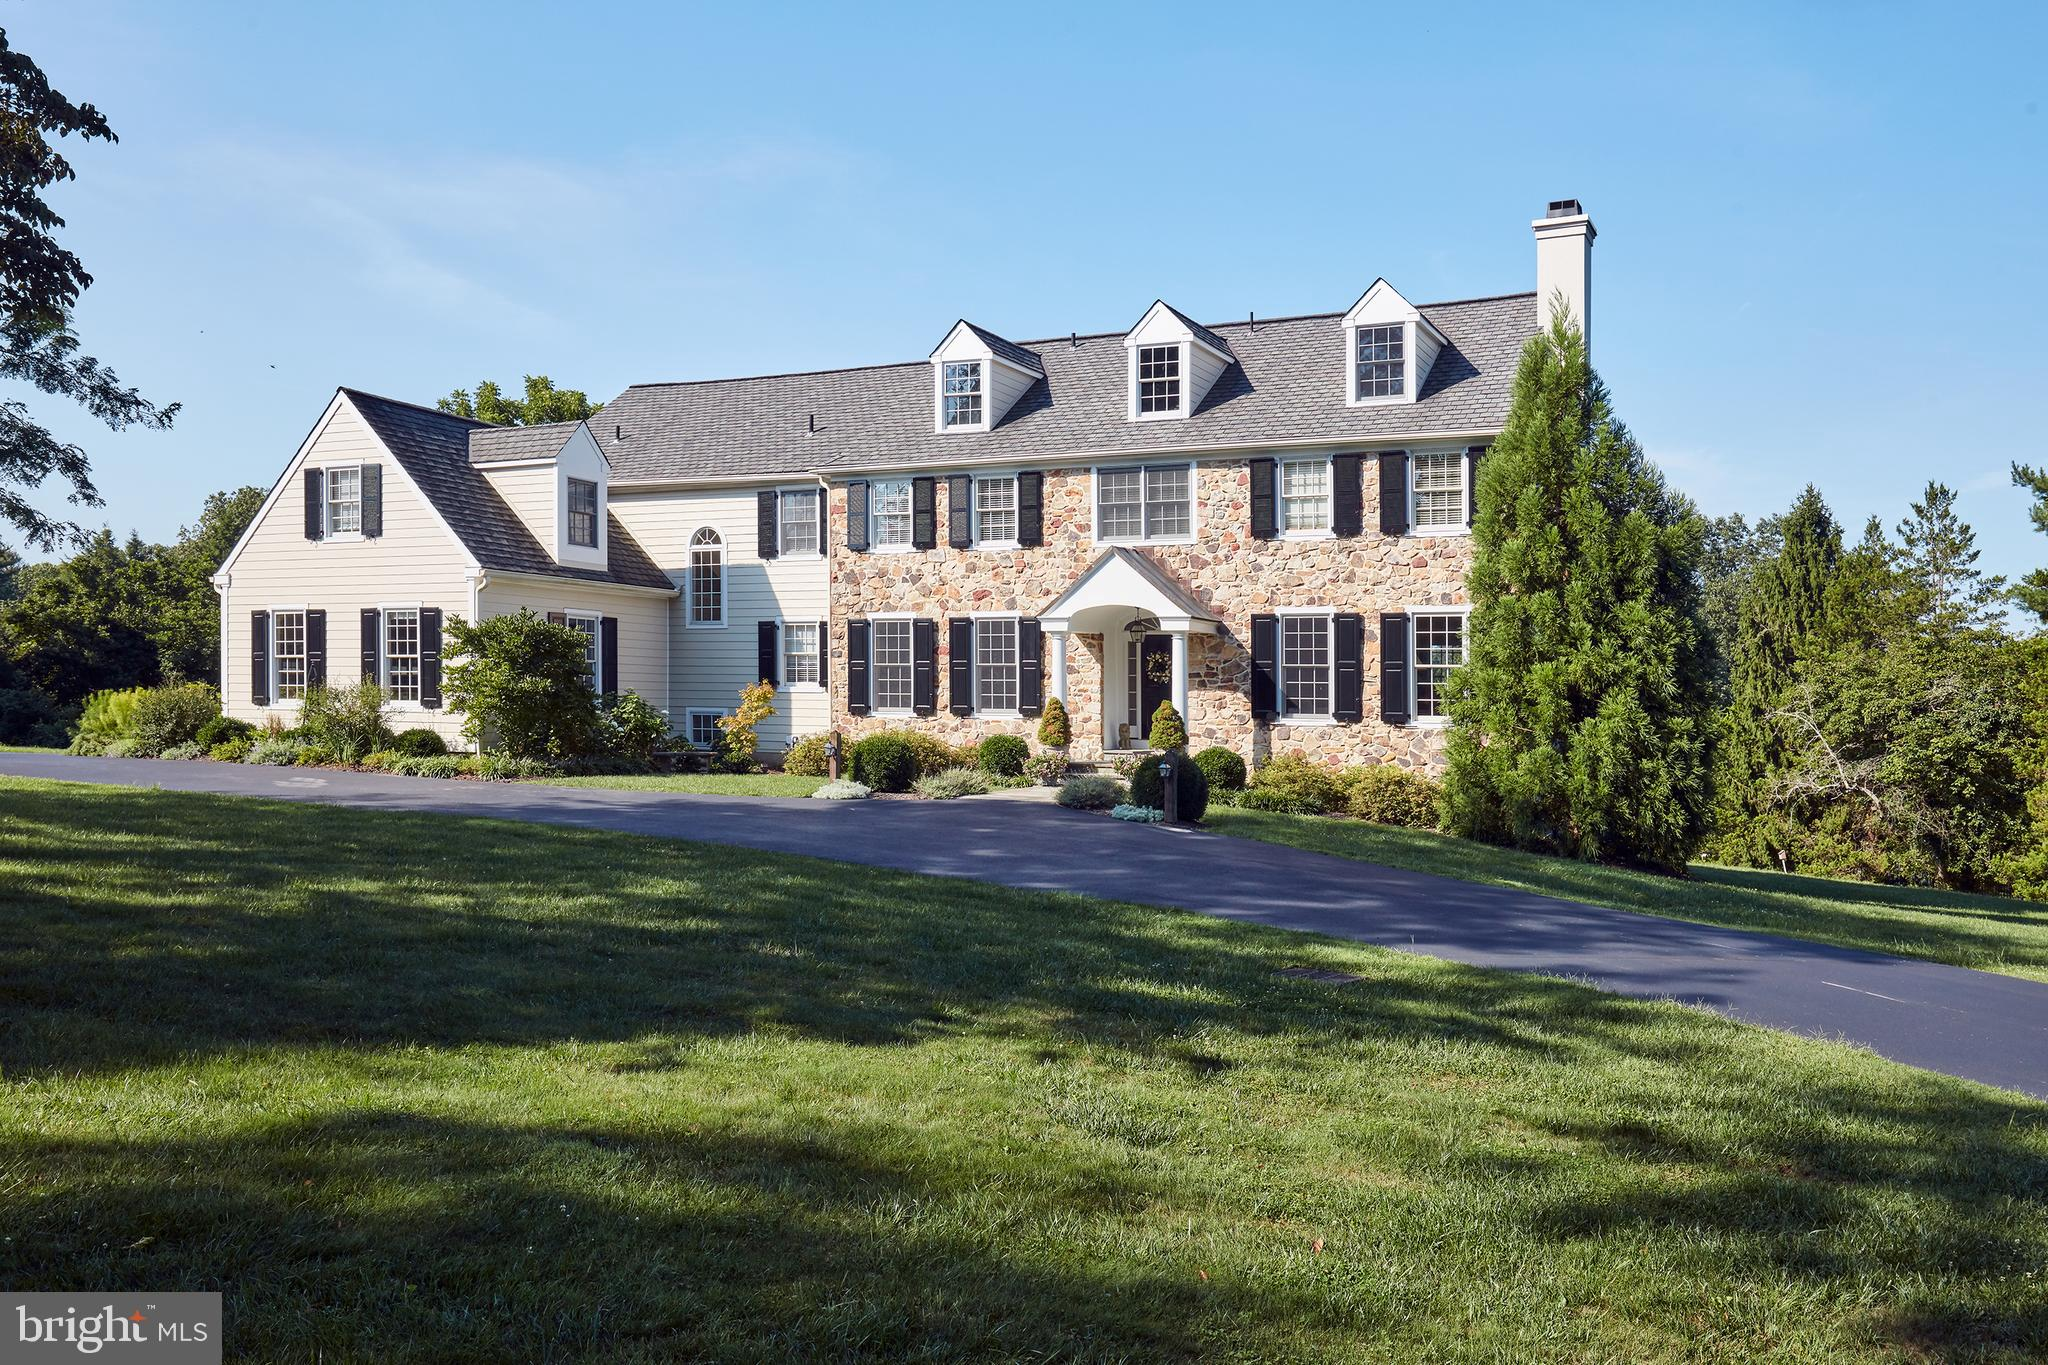 7 DUNMINNING ROAD, NEWTOWN SQUARE, PA 19073